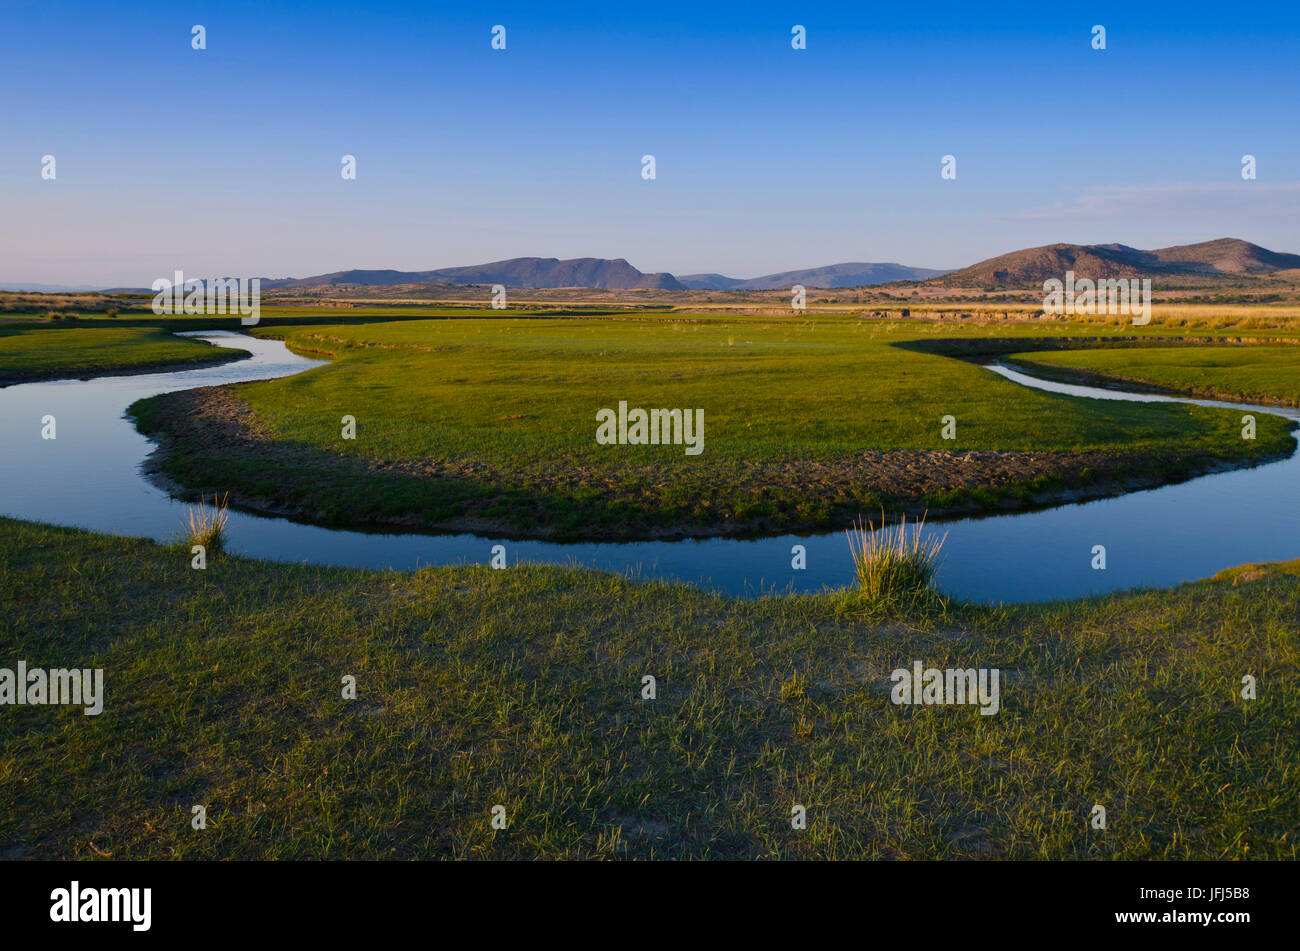 La Mongolie, l'Asie centrale, camp dans le paysage de steppe de Gurvanbulag, river bend Photo Stock